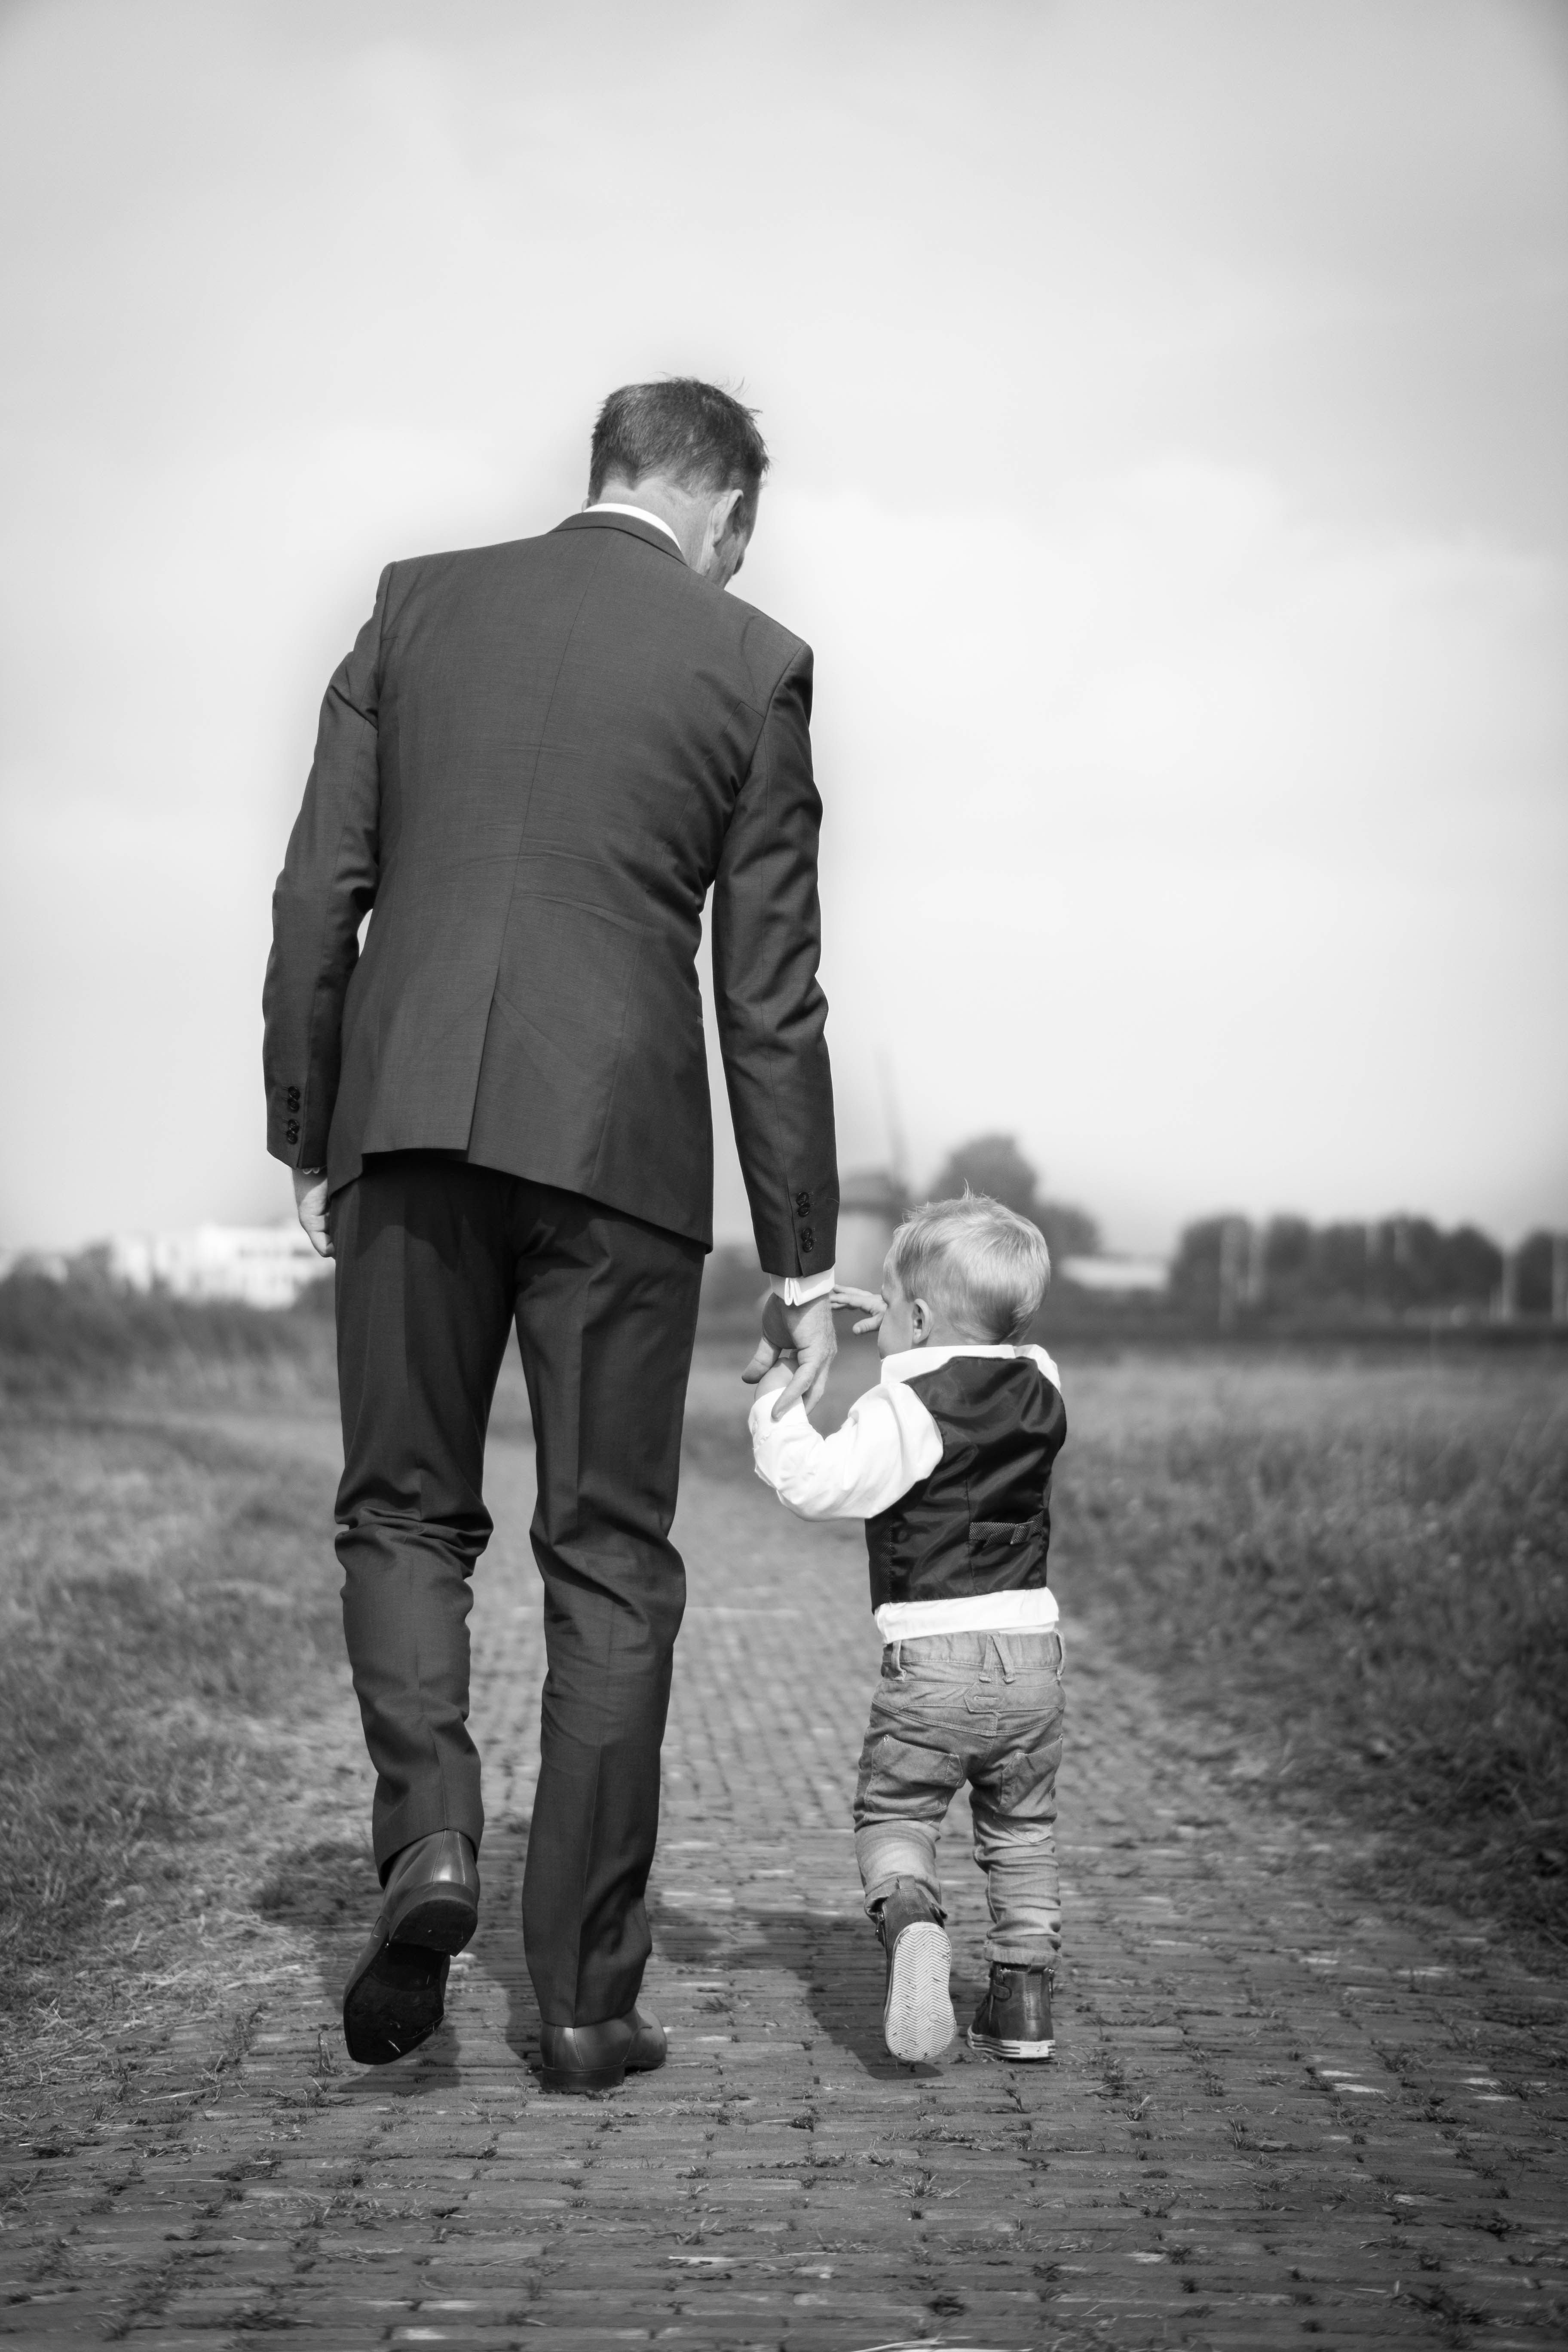 Father and his young son dressed up walking hand in hand